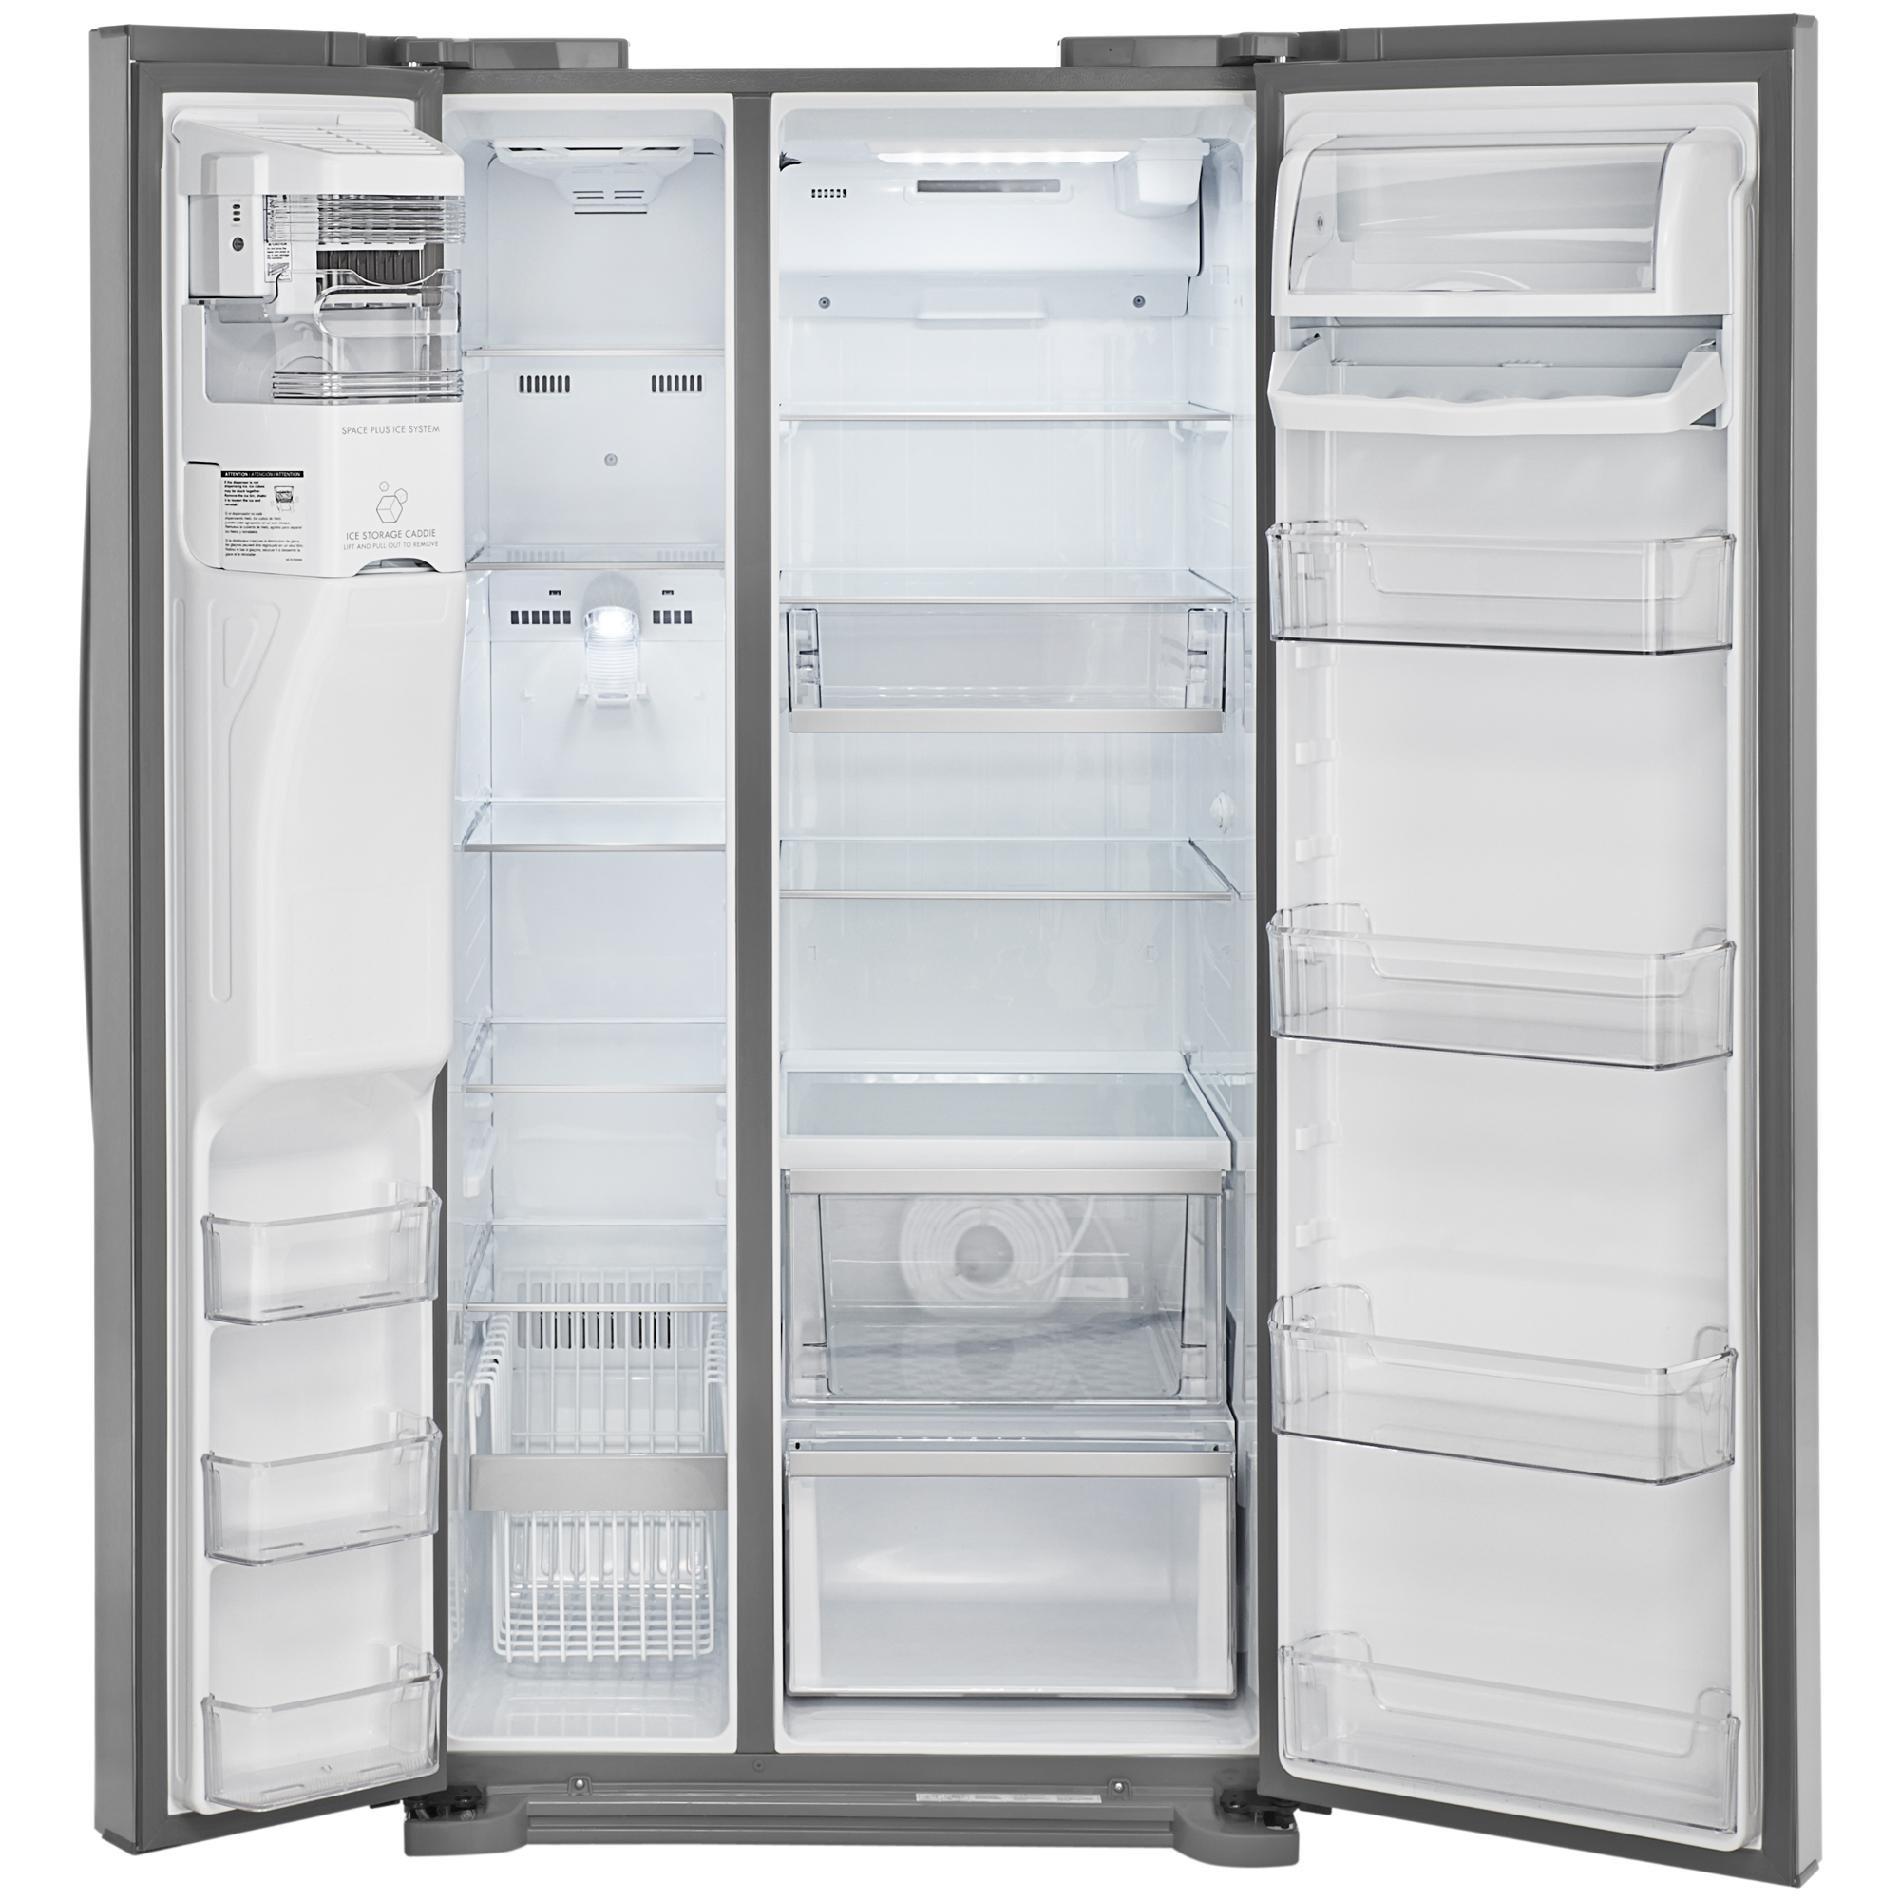 Kenmore Elite 51823 21.9 cu. ft. Side-by-Side Refrigerator in Stainless Steel, includes delivery and hookup (Available in select cities only) by Kenmore (Image #5)